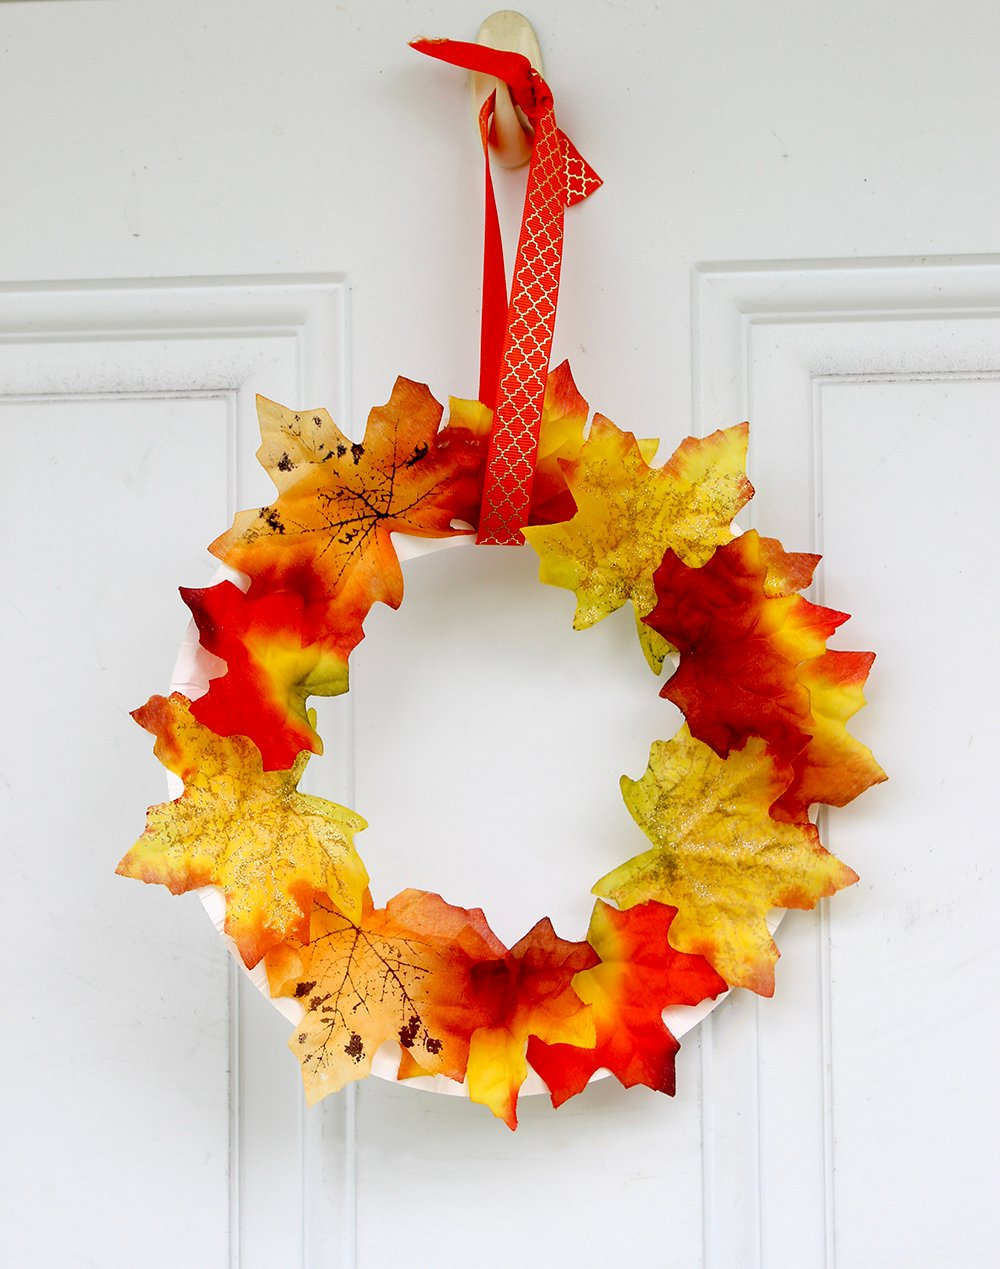 A simple Fall ribbon is the final touch to make this Fall wreath door decor ready